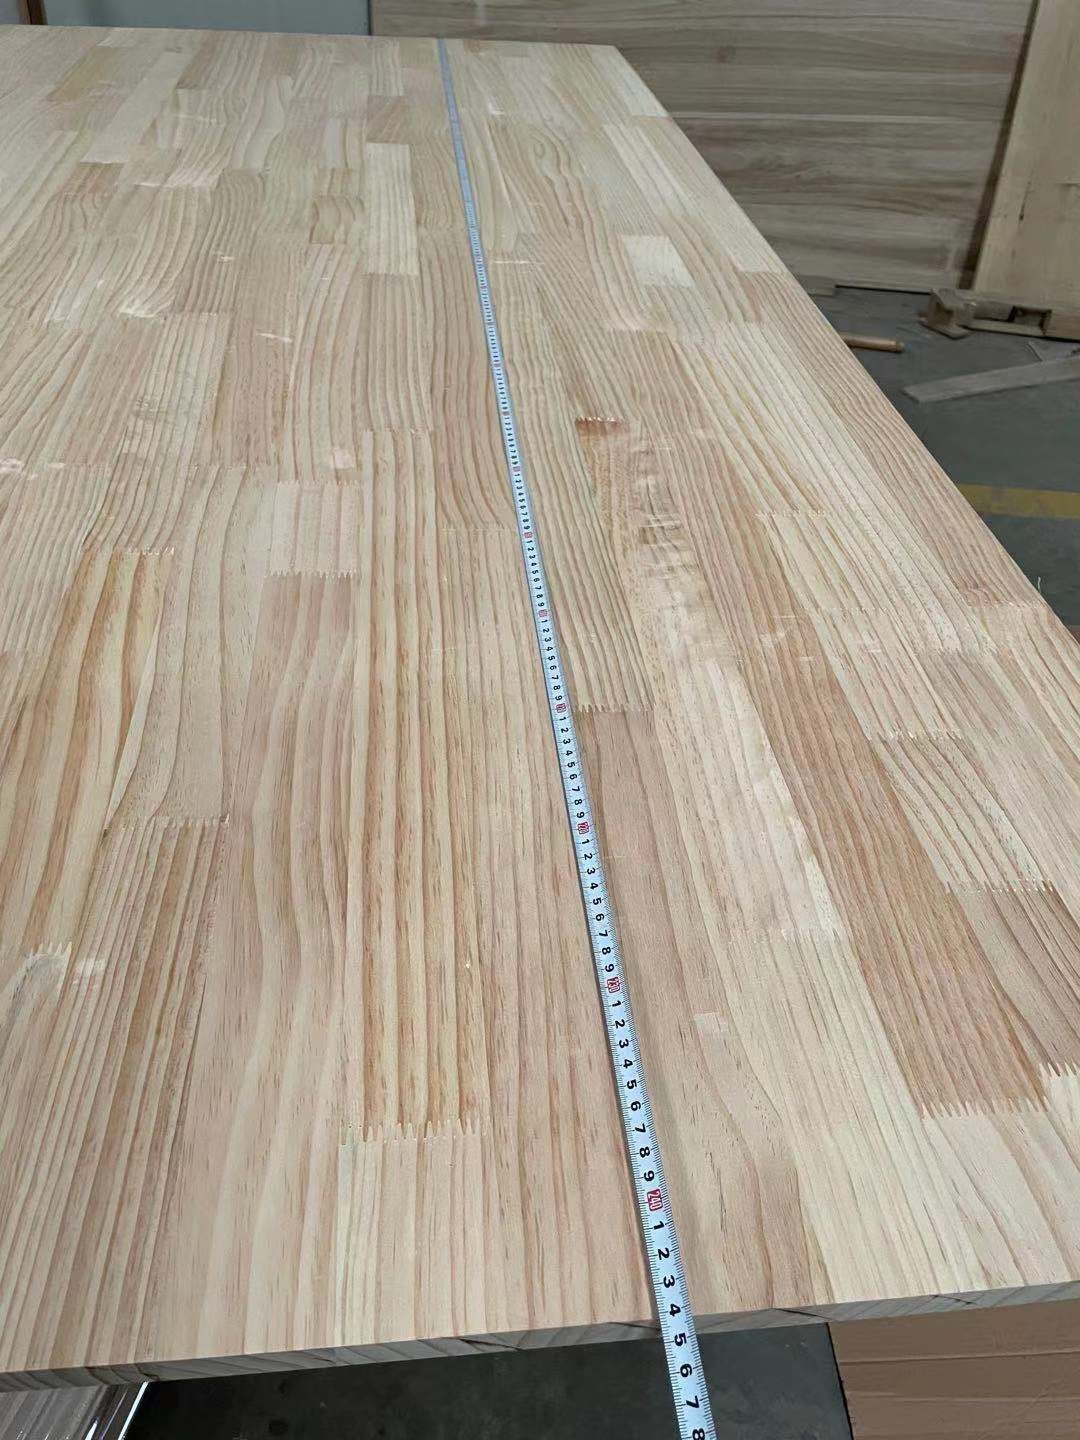 newzealand pine finger joint board used for furniture